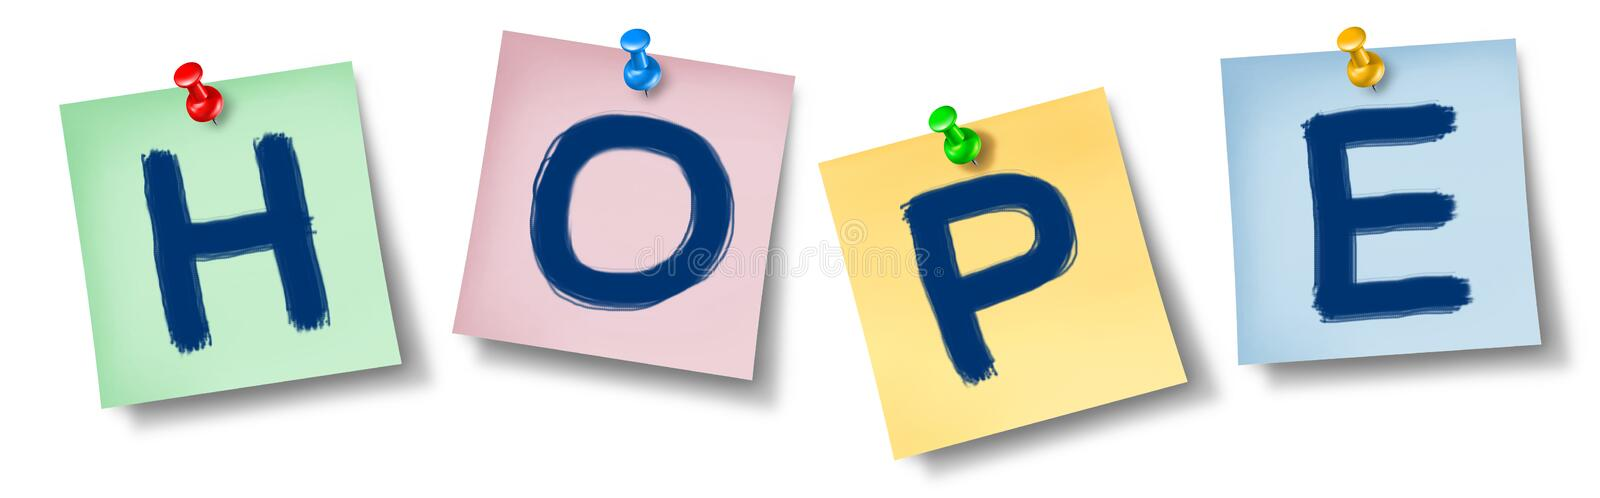 Hope Symbol On Office Notes Royalty Free Stock Photography